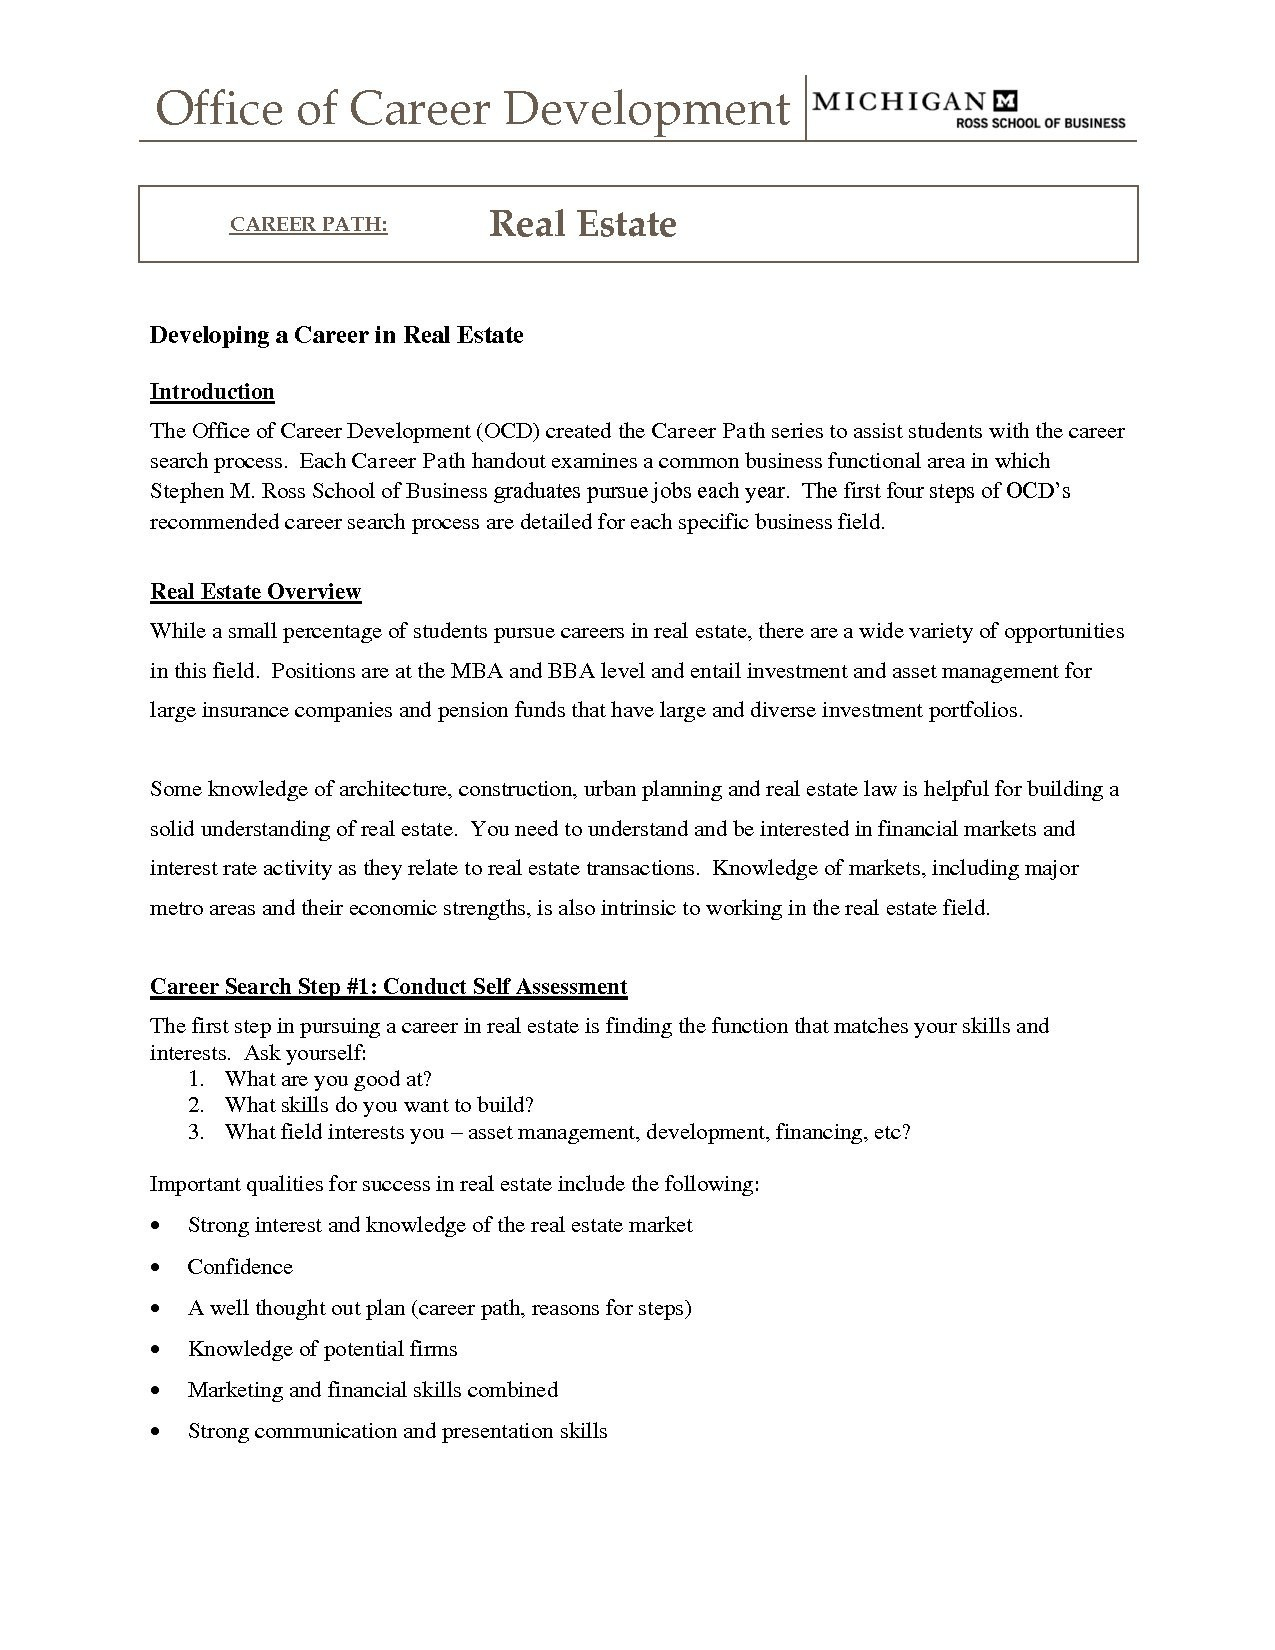 Ross School Of Business Resume Template - Real Estate Agent Resume No Experience Fresh Realtor Resume Example